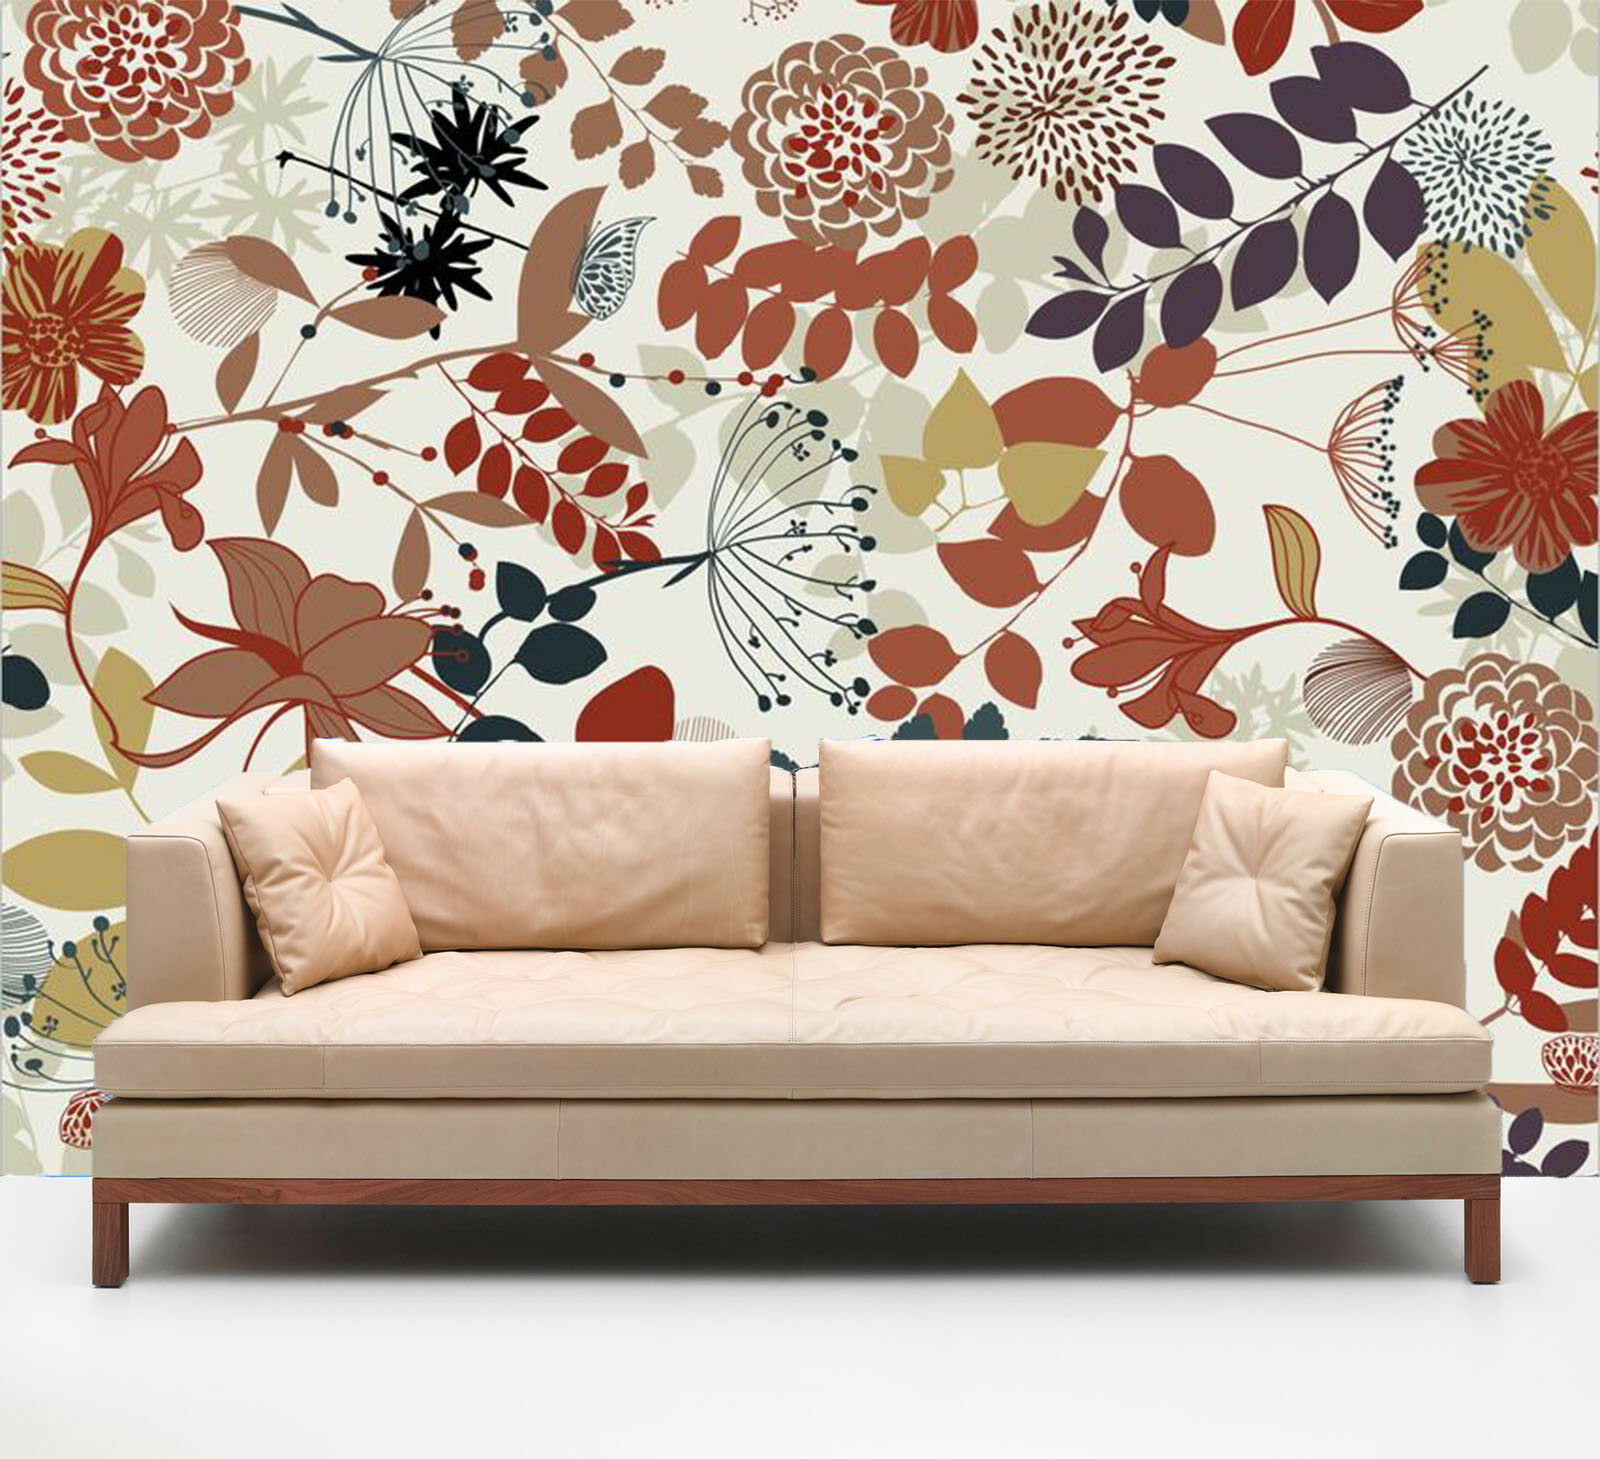 3D Messy Style 87 Wall Paper Murals Wall Print Wall Wallpaper Mural AU Carly